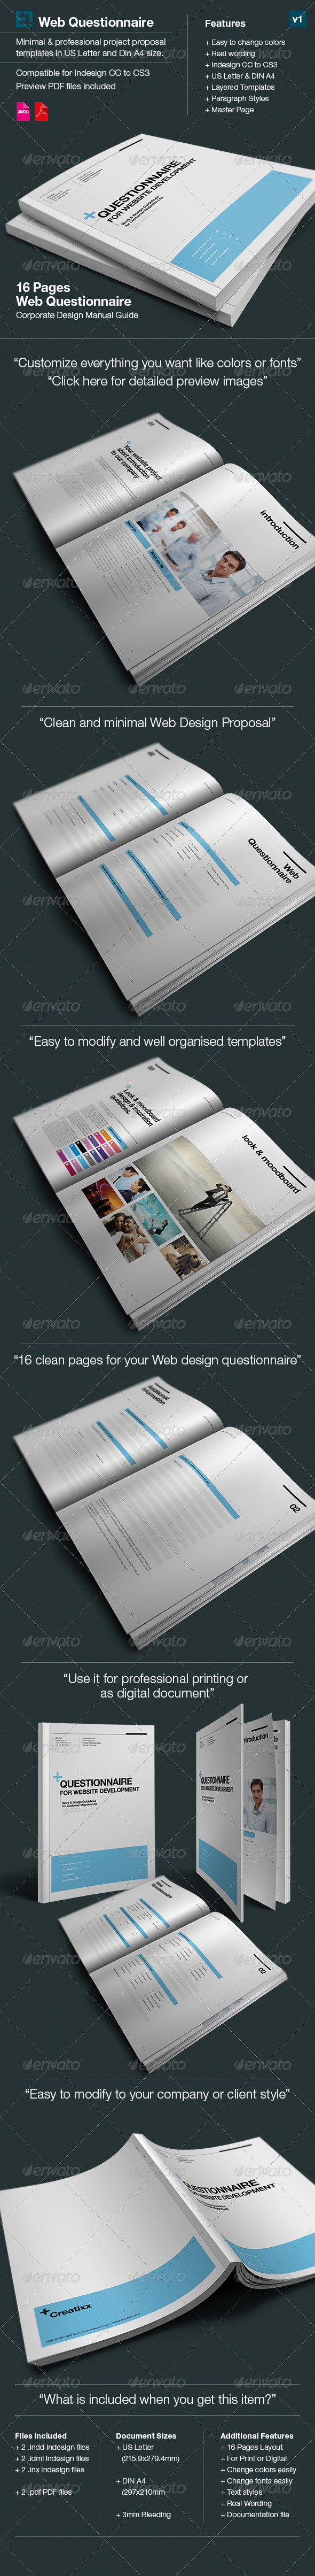 GraphicRiver Dsign Questionnaire for Web Design Proposal 6647566